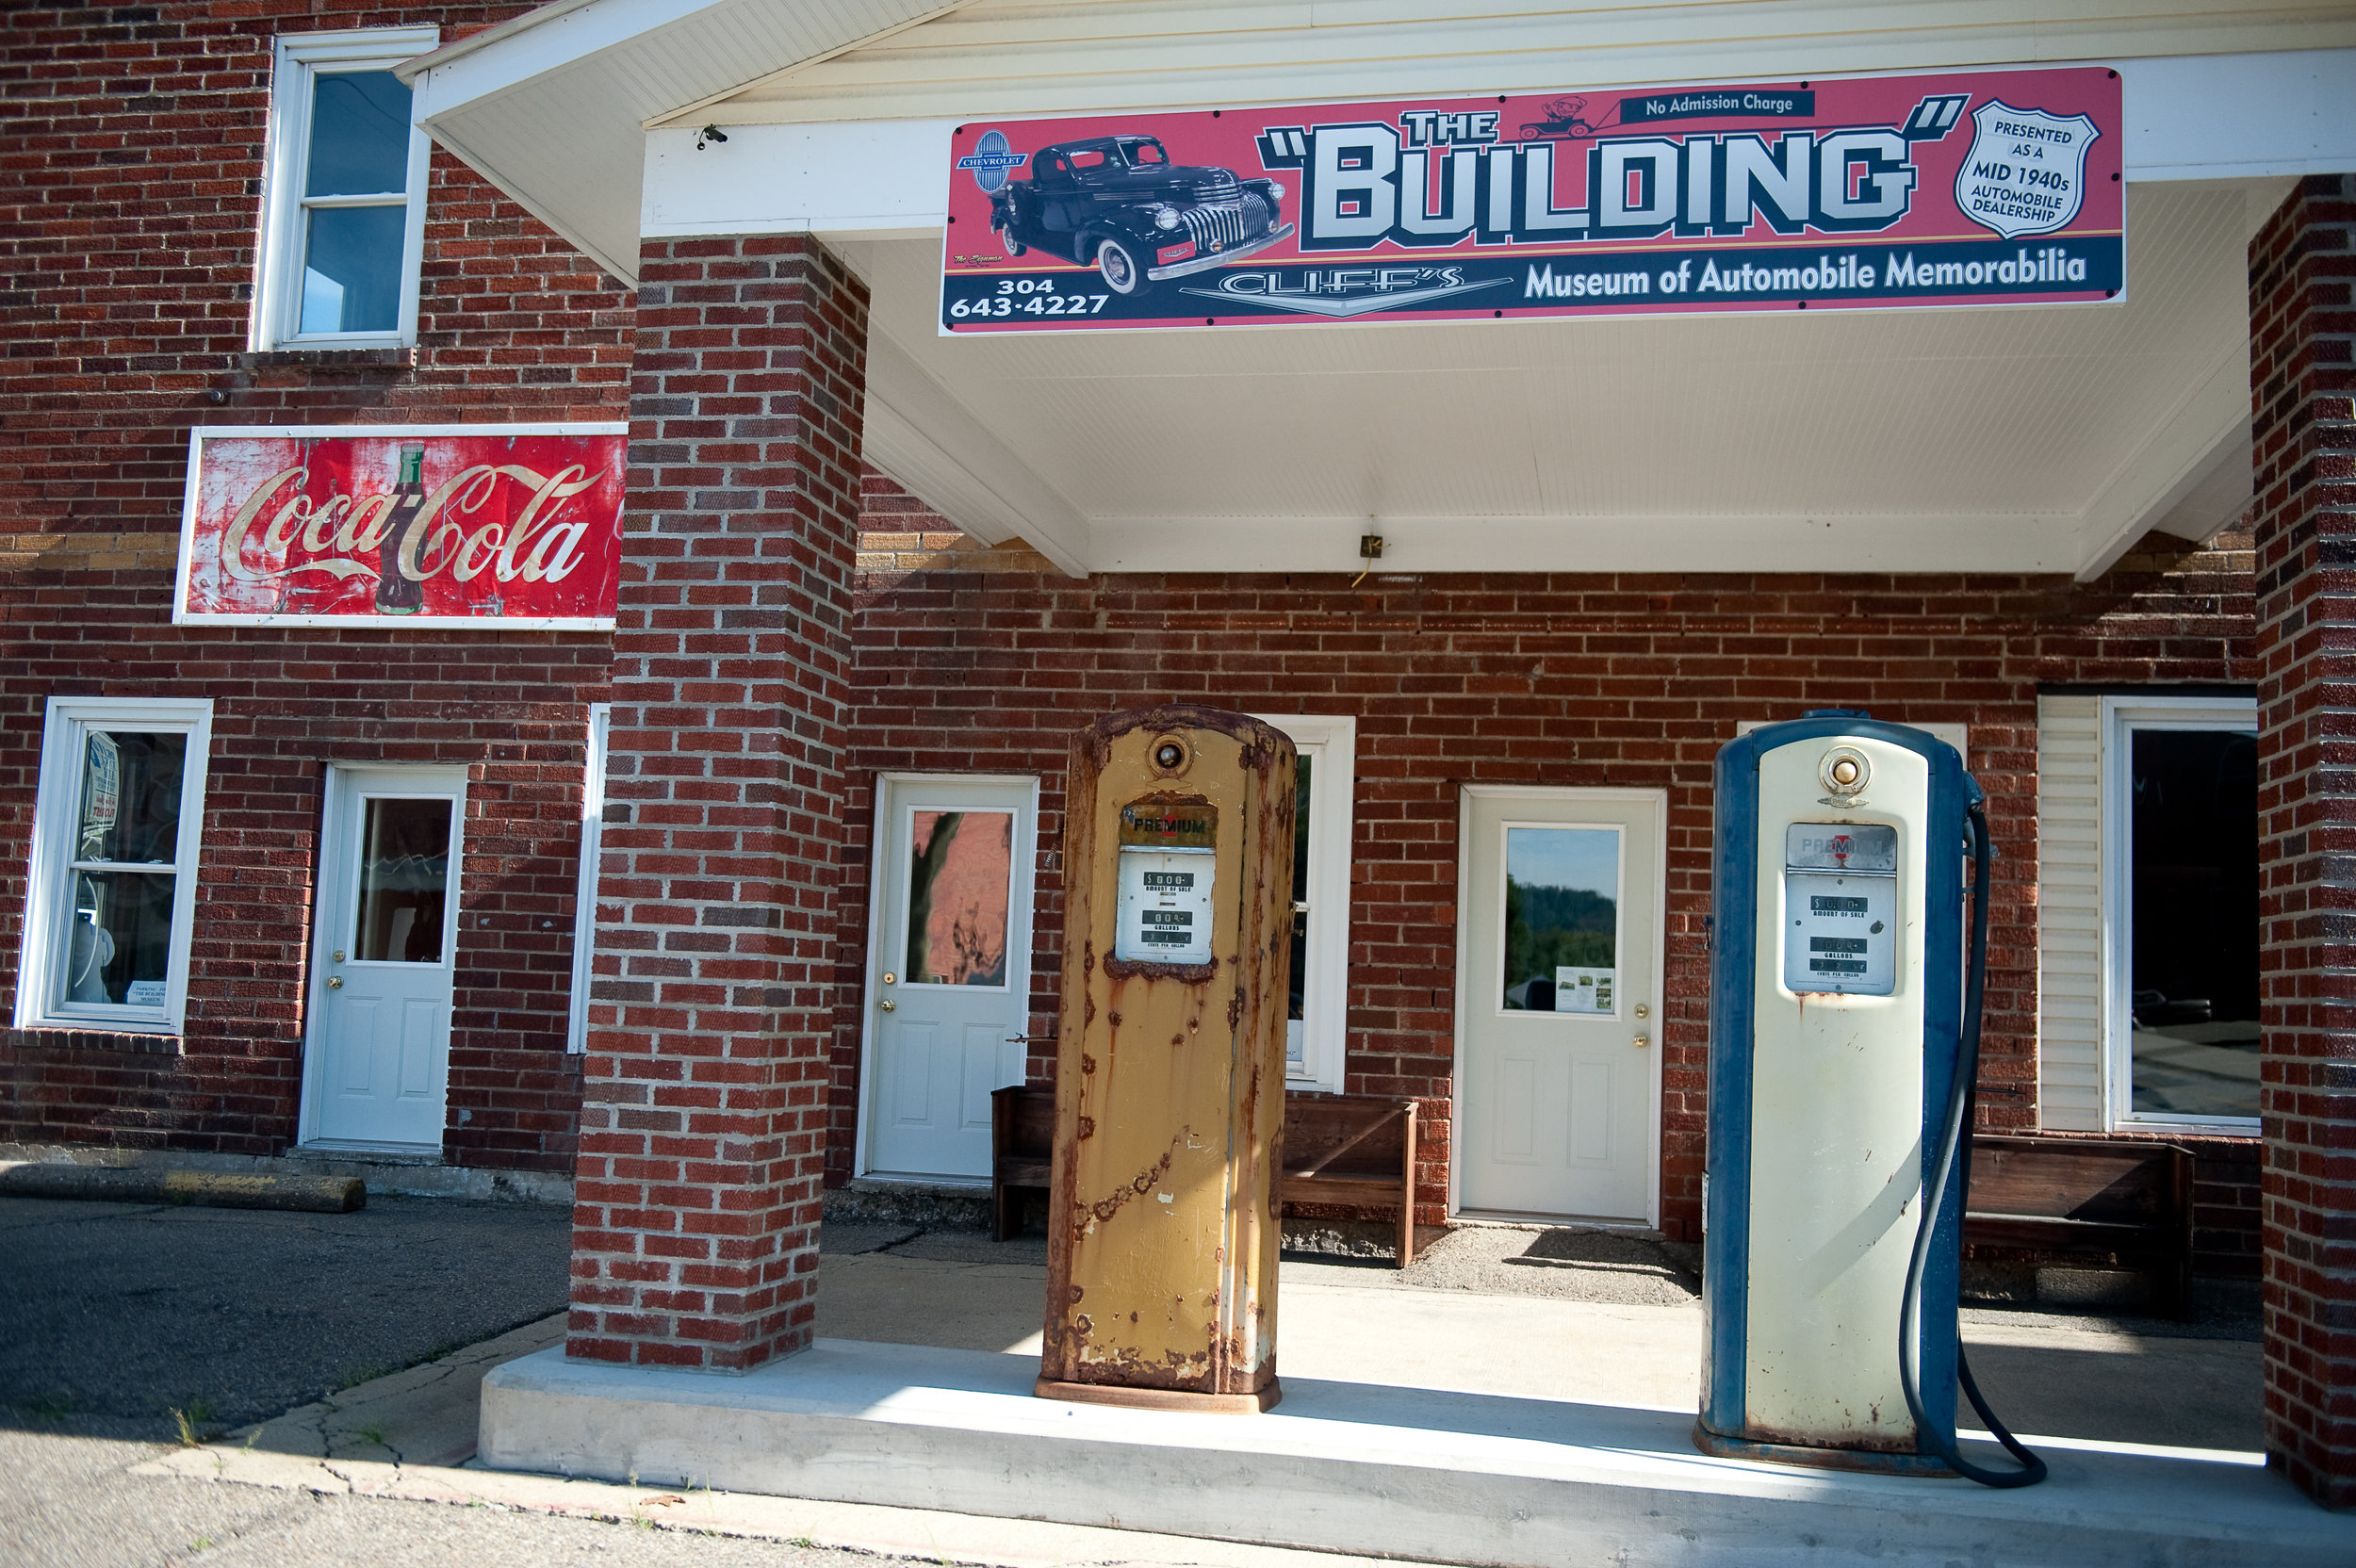 'The Building' Cliff's Museum of Car Memorabilia